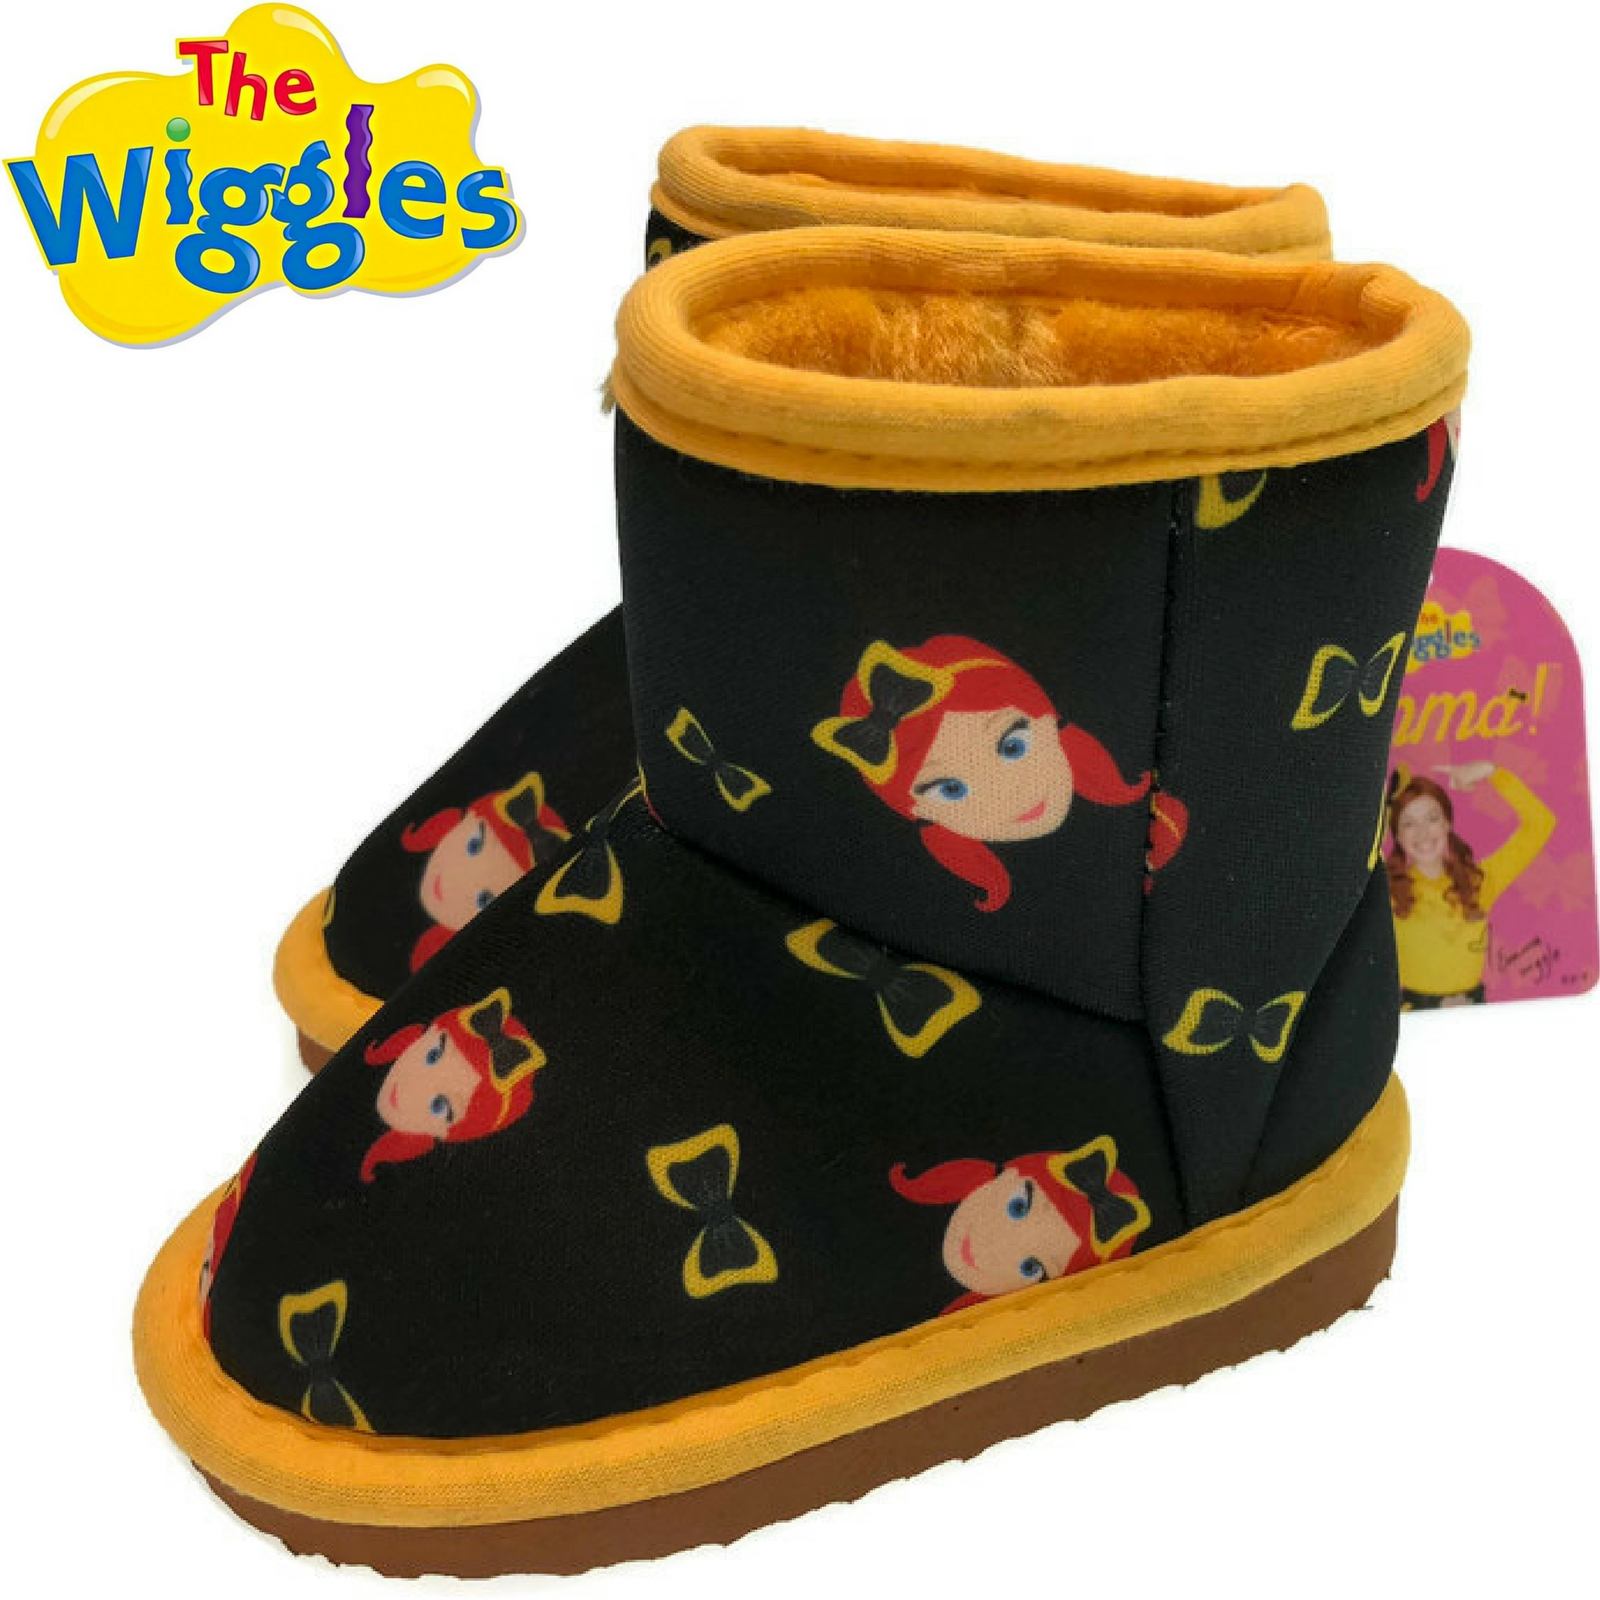 18b5643e3128 h m s Remaining. THE WIGGLES Emma Bow Print Boots Official Licensed  Children s Shoes